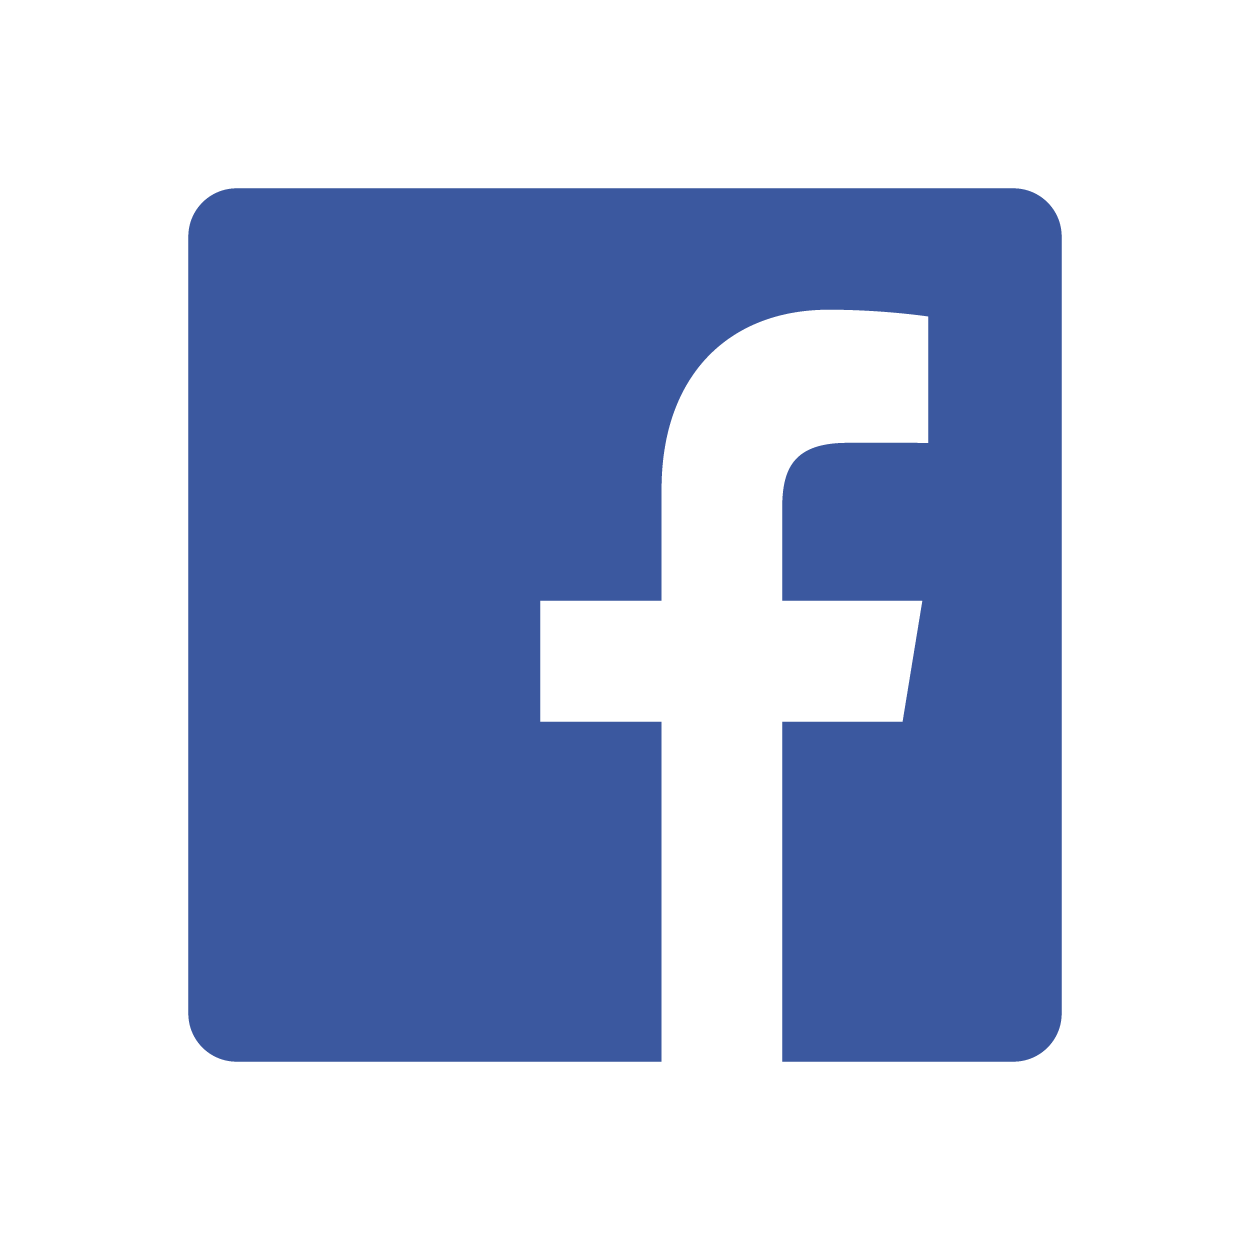 Logo Computer Facebook Icons Free PNG HQ PNG Image